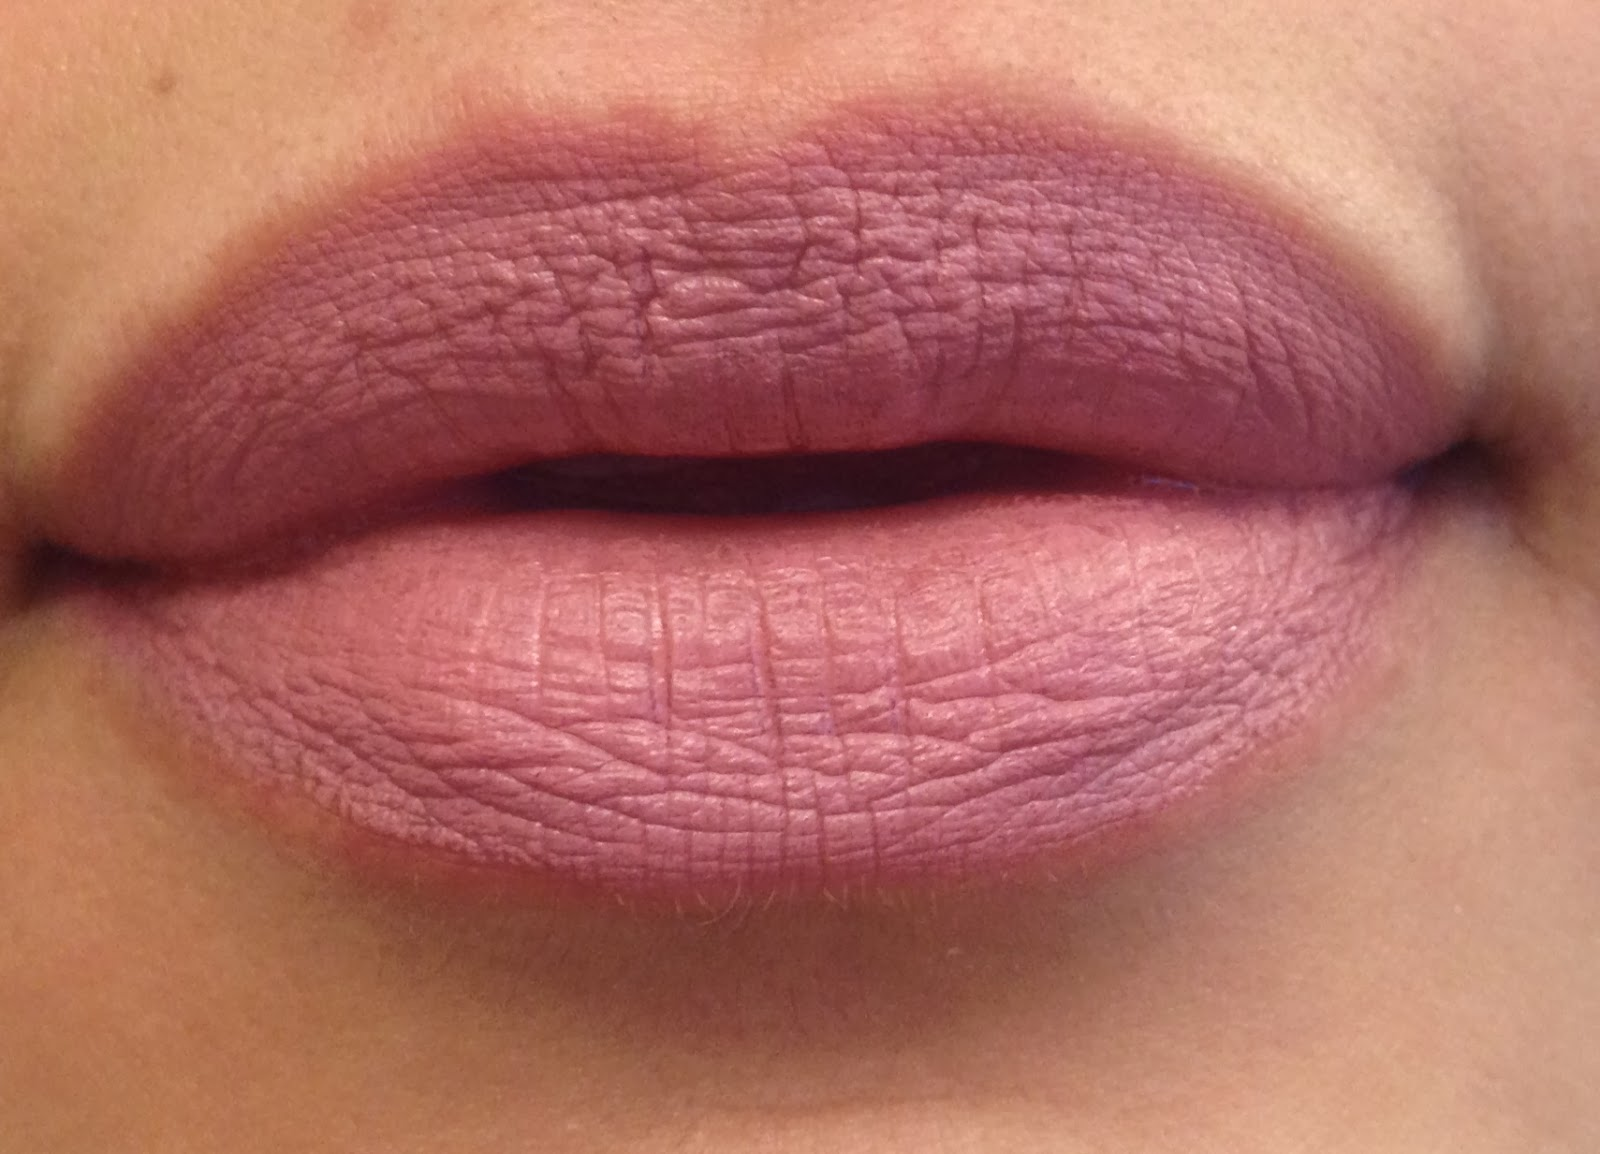 macs pink plaid lipstick swatch